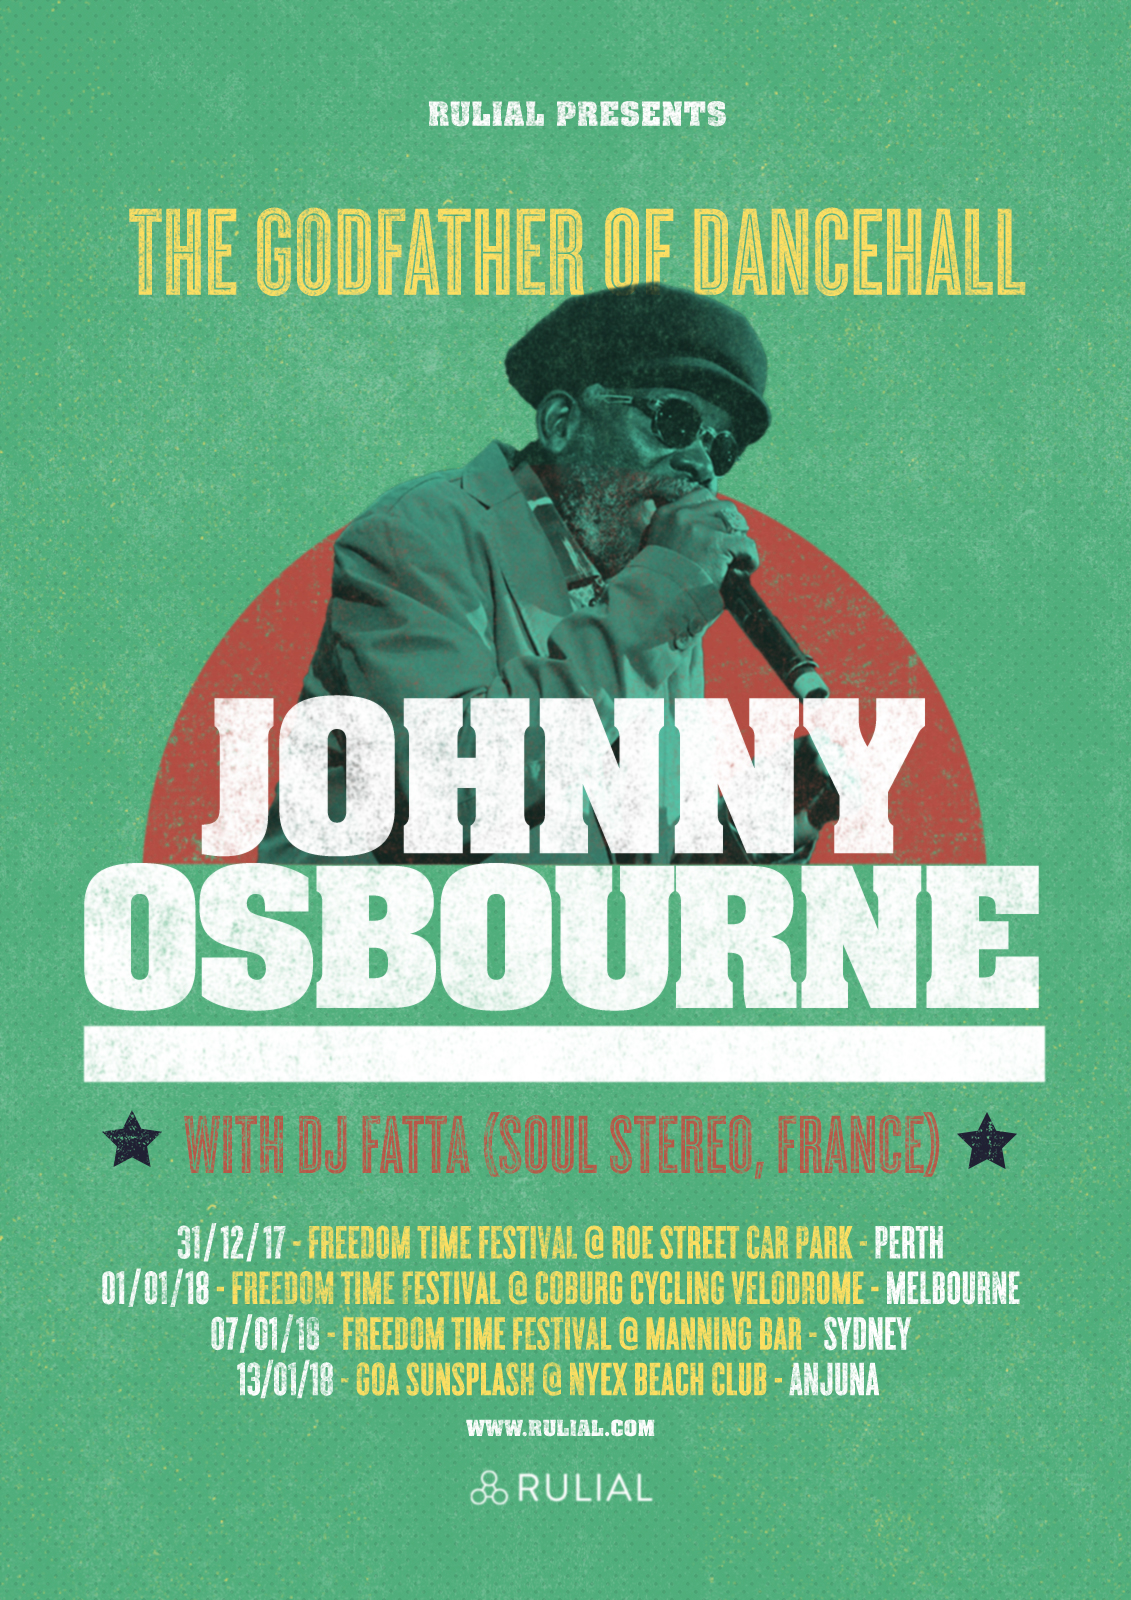 JOHNNY OSBOURNE AUSTRALIA & GOA TOUR